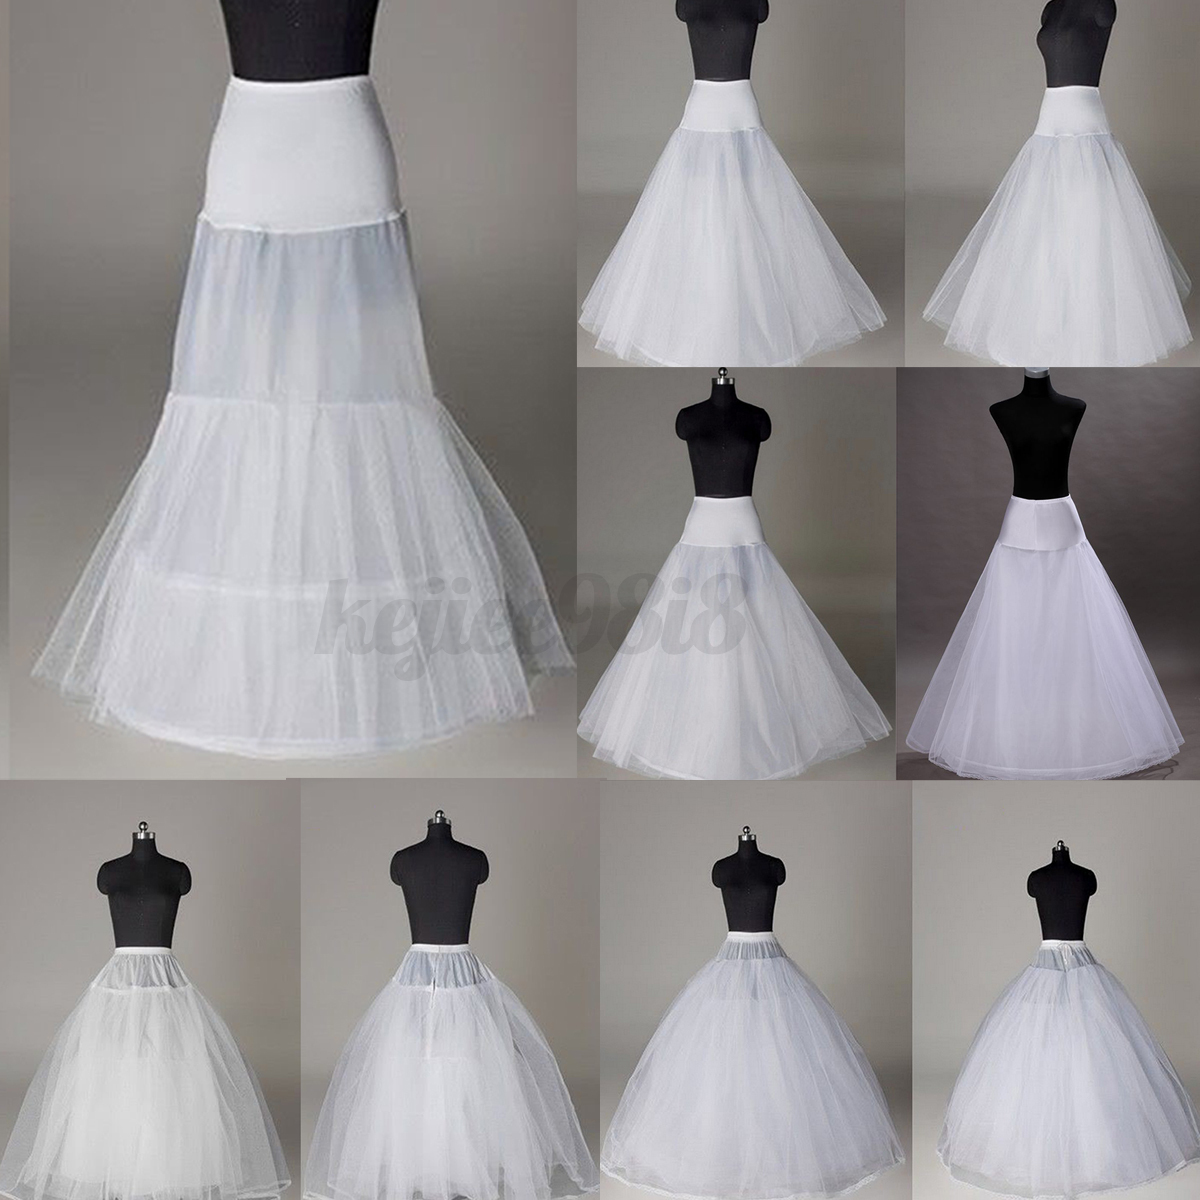 Bridal Wedding Prom Dress Hoopless Crinoline Underskirt Fancy ...